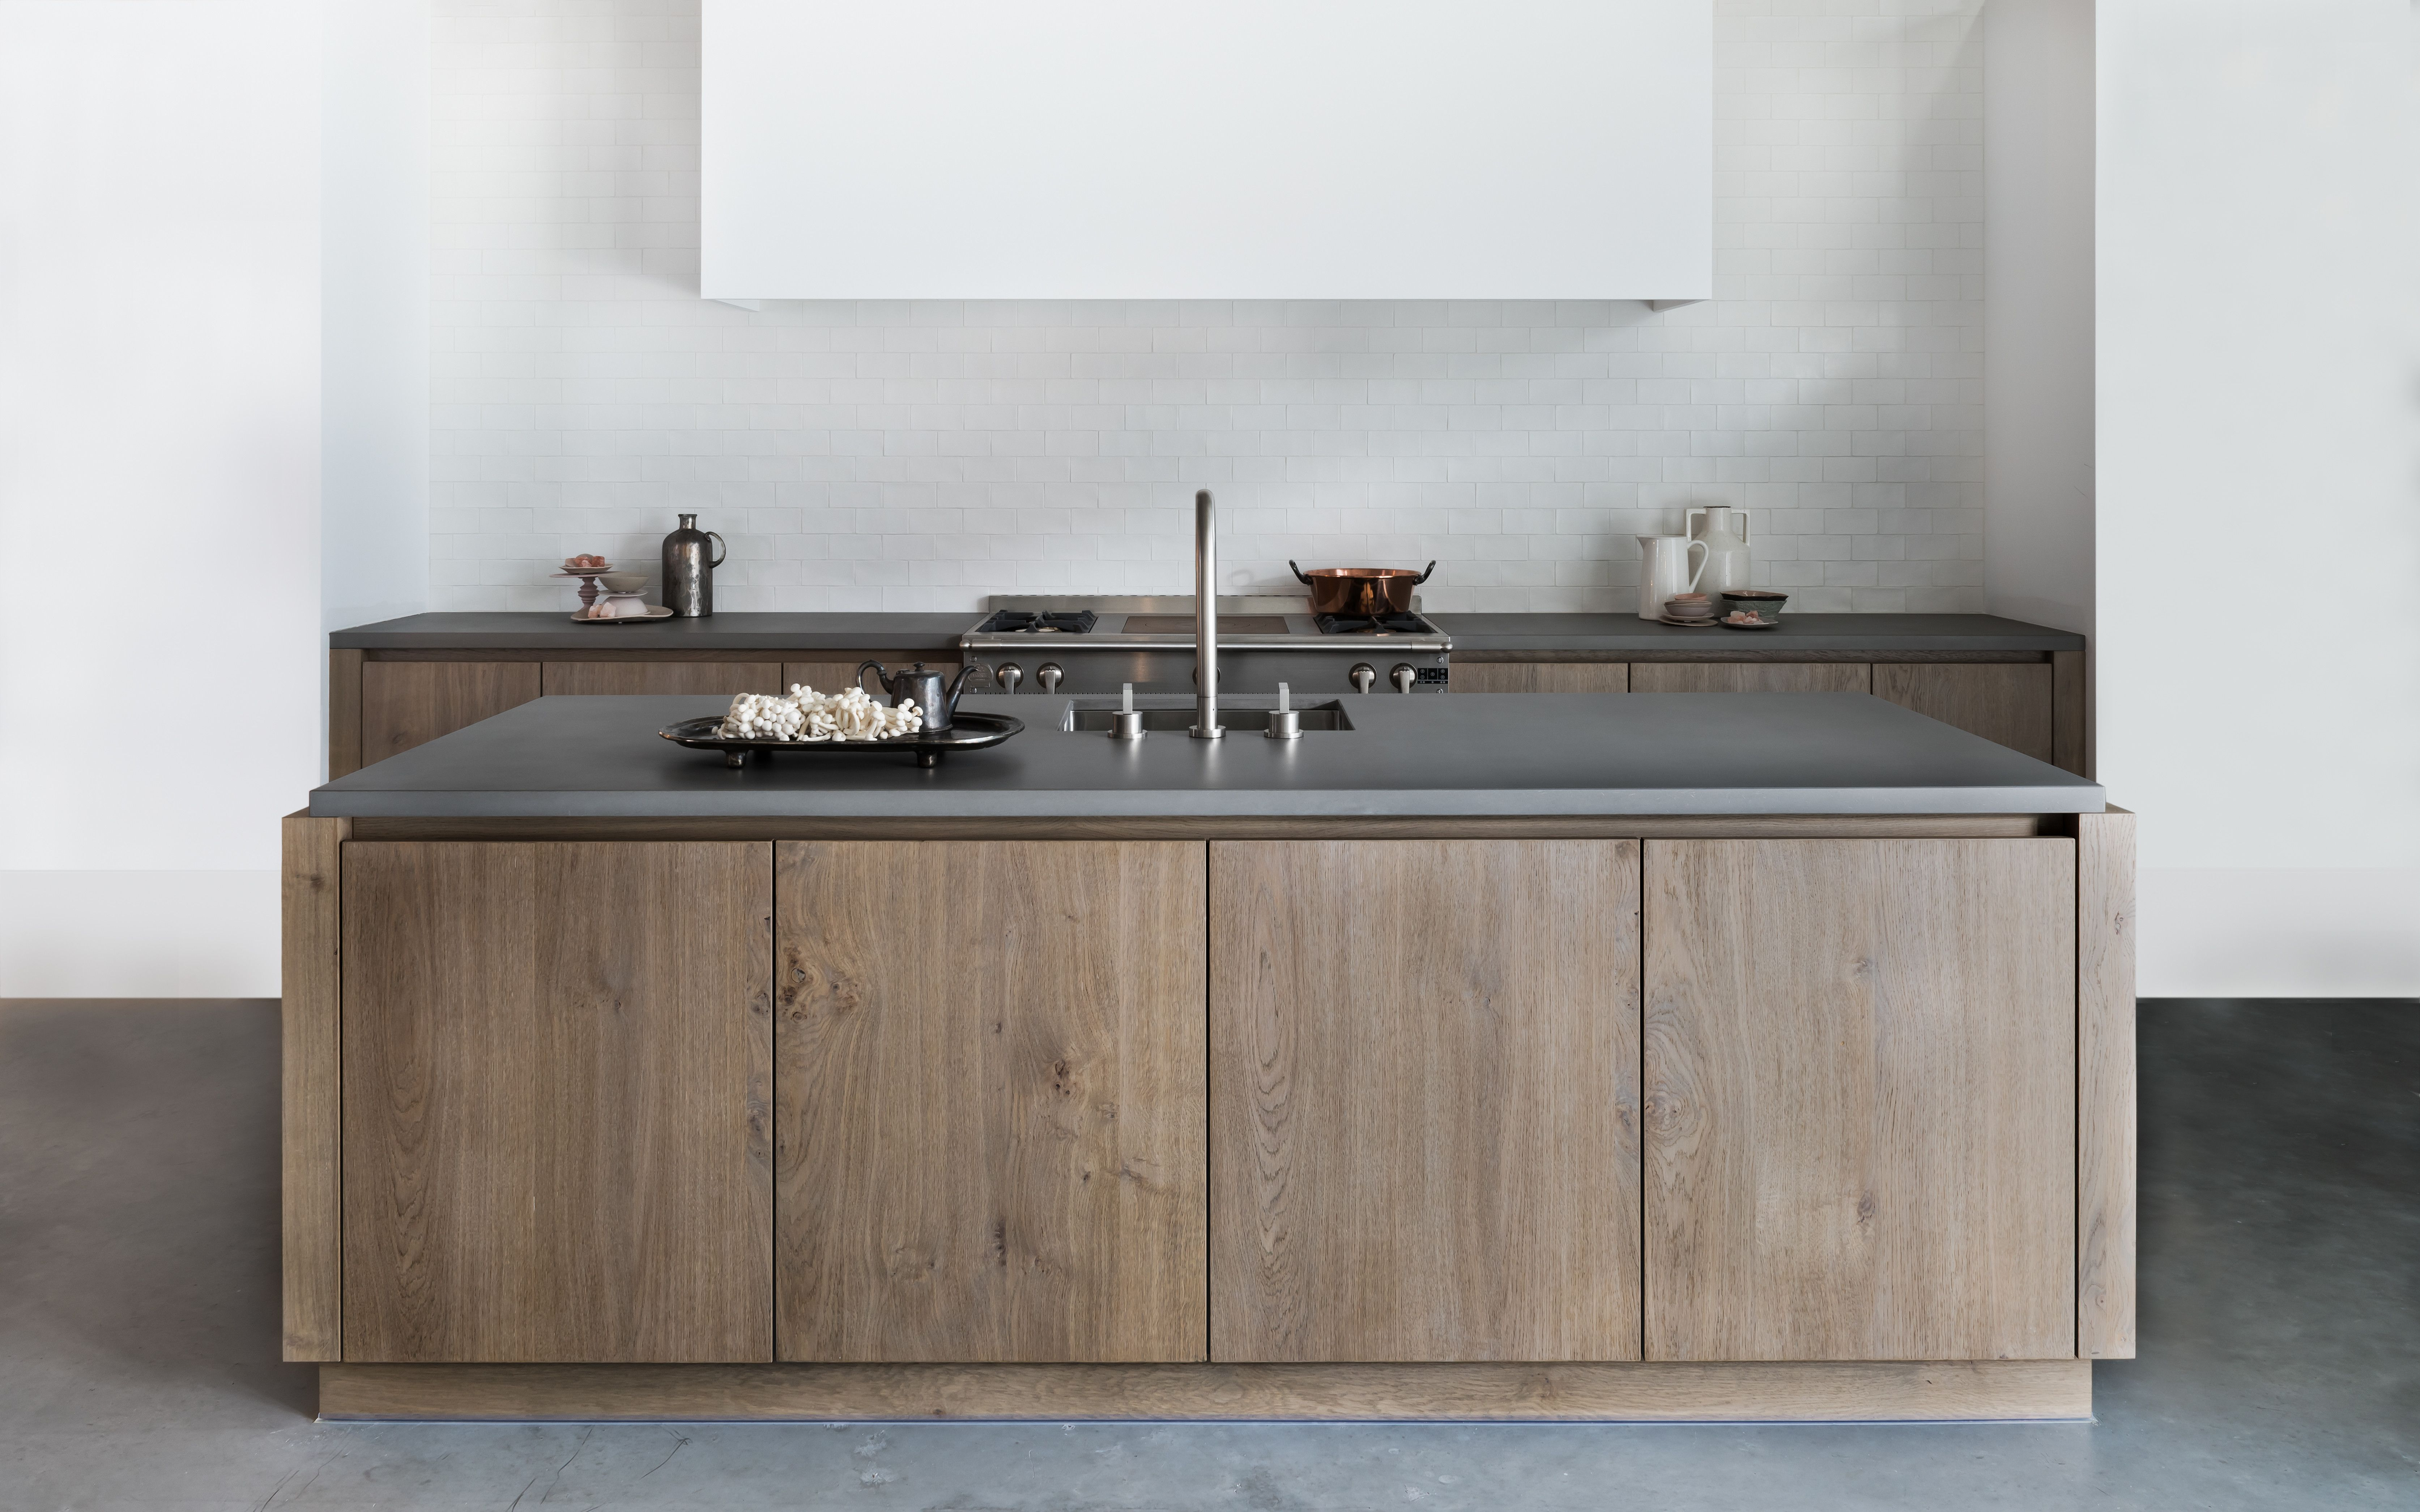 Ceramic Signature tile - matte white | Piet Boon Kitchen | SIGNATURE ...